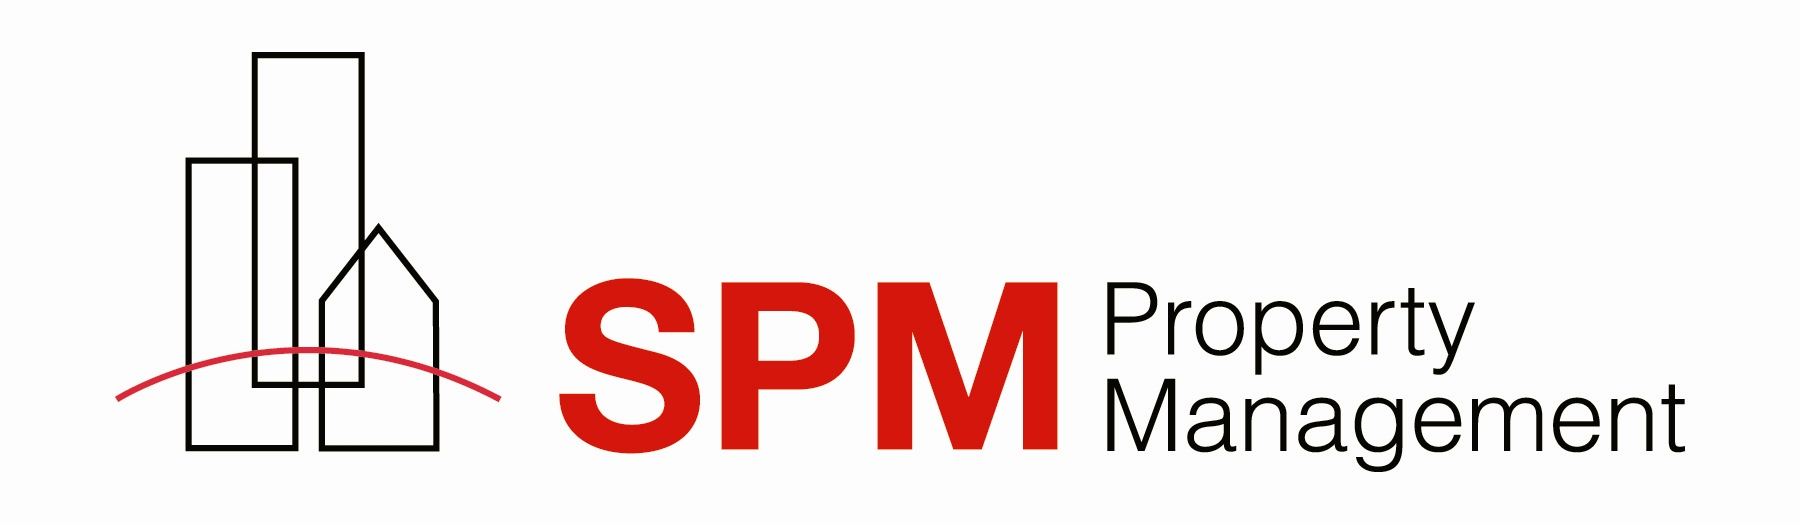 SPM Property Management